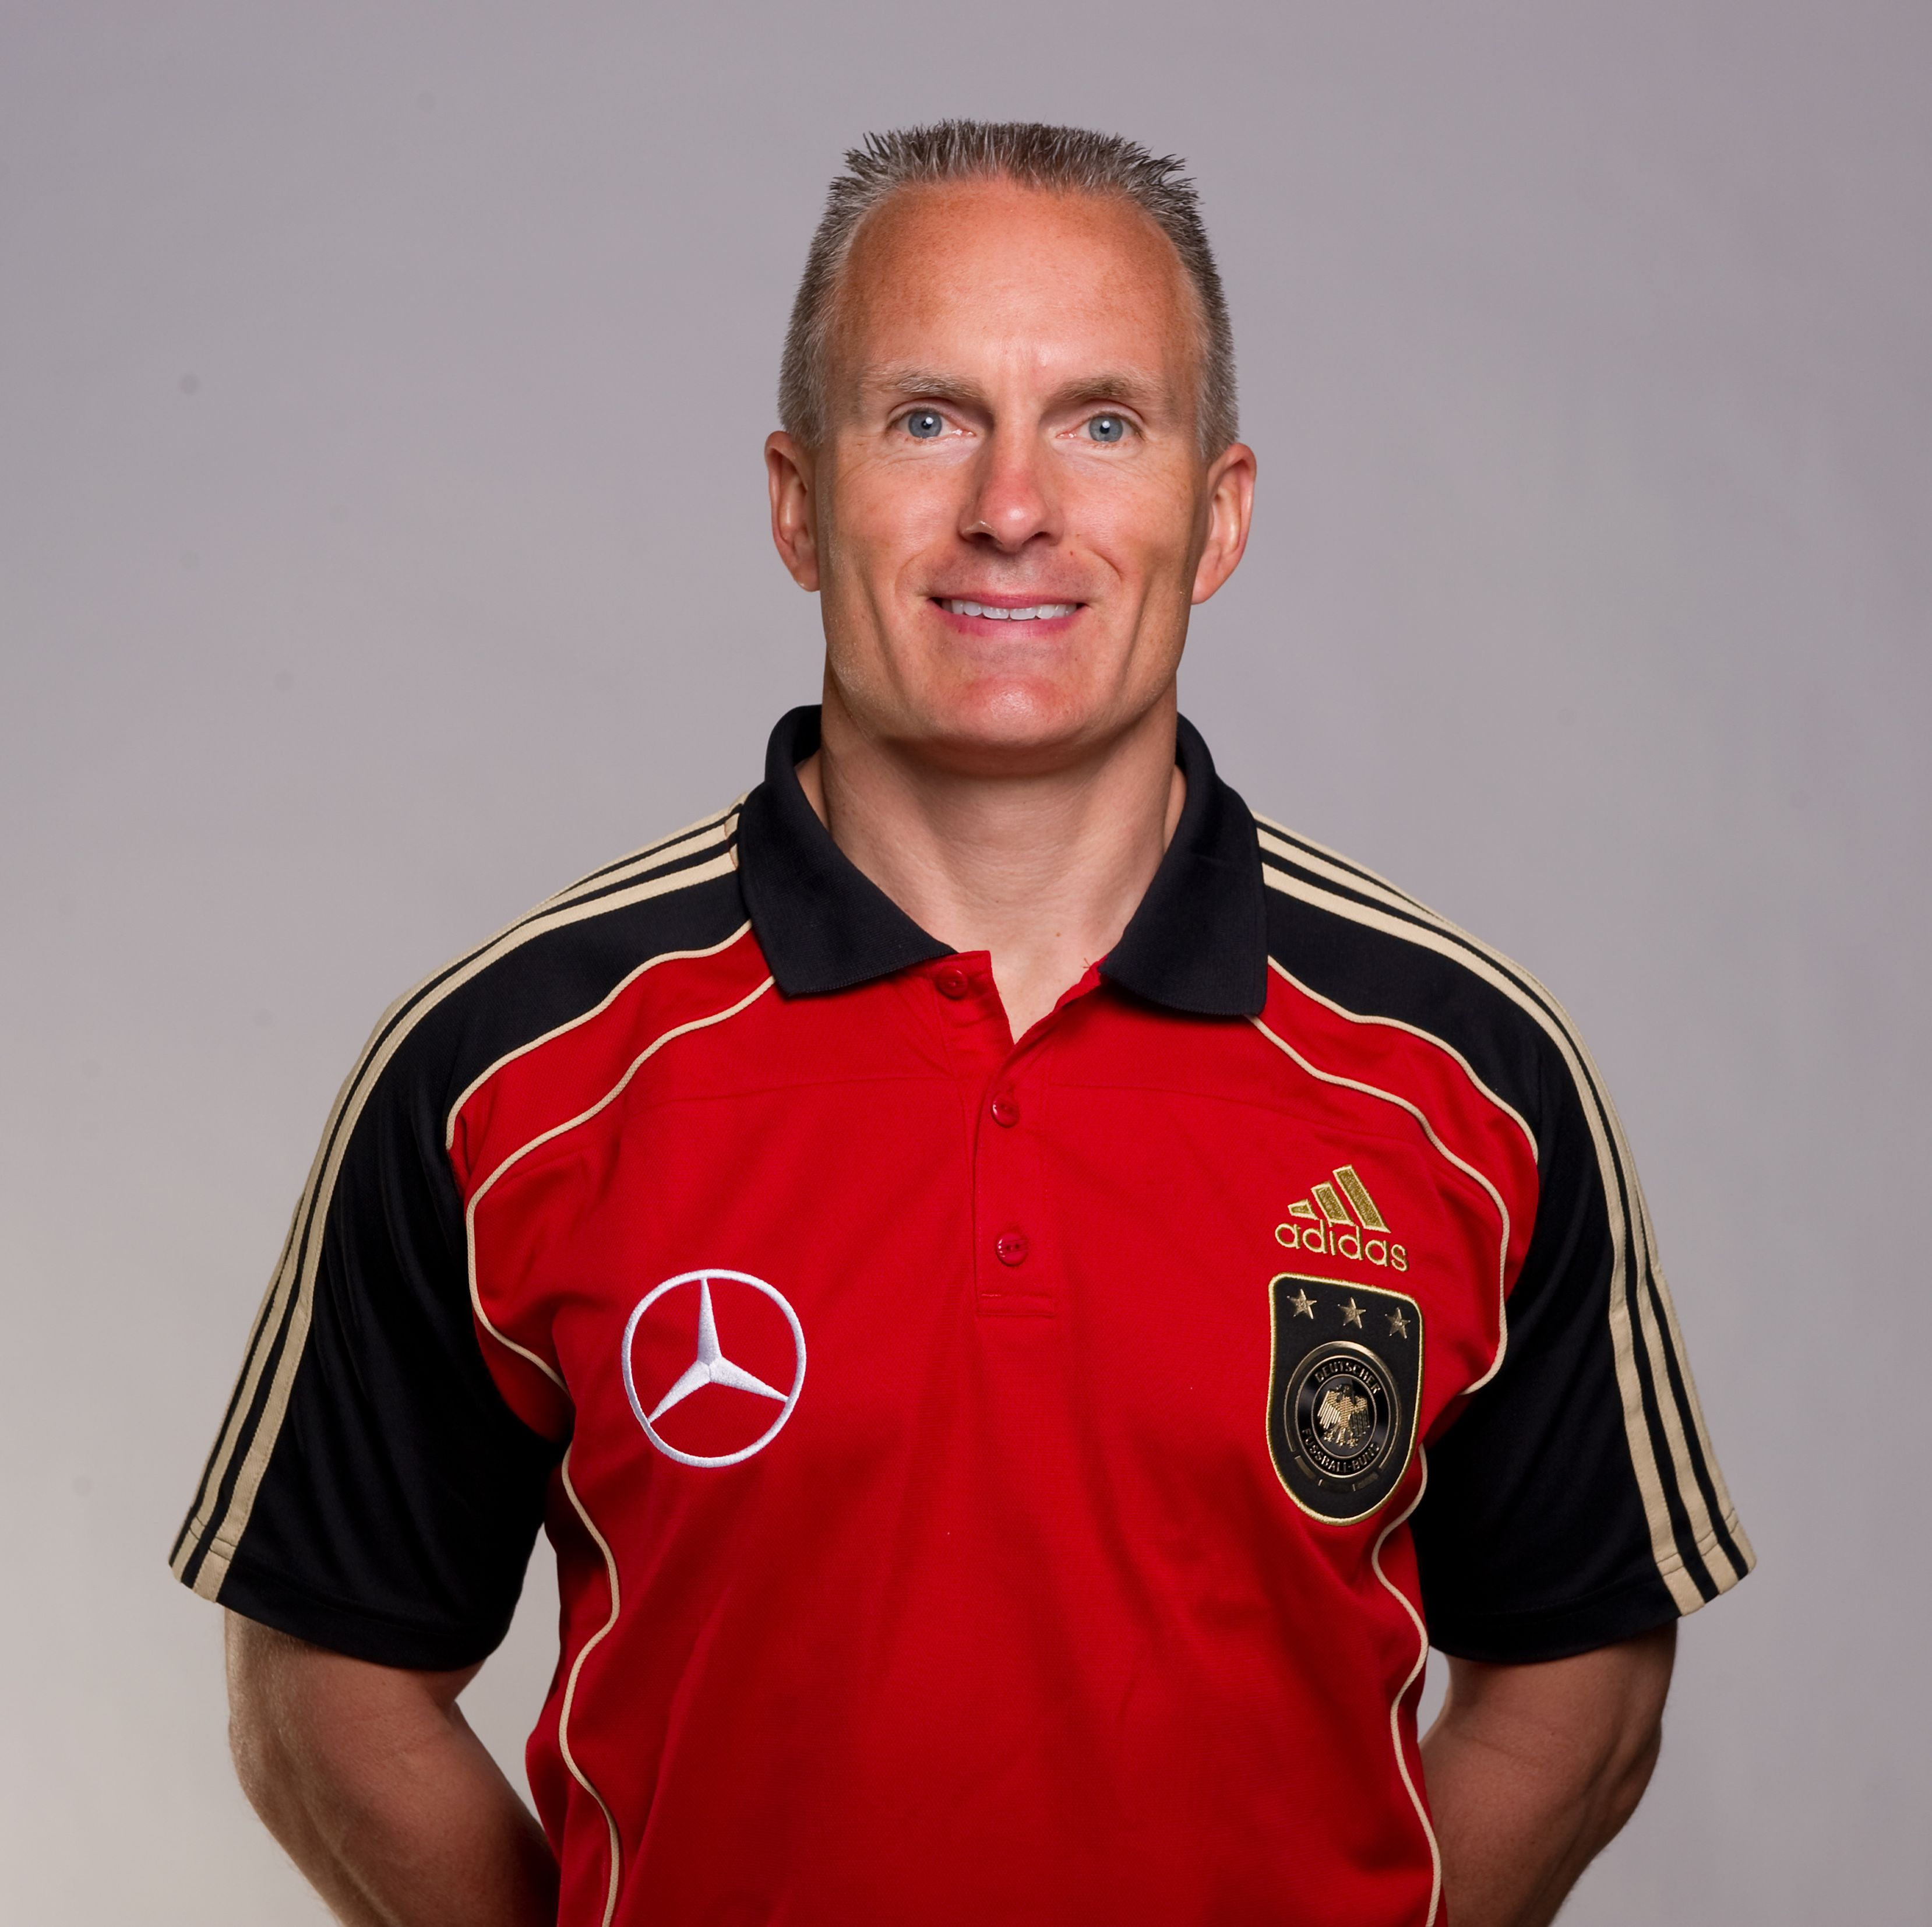 Mark Verstegen, the Smartest Man in Fitness, Wants to Solve the Obesity Crisis